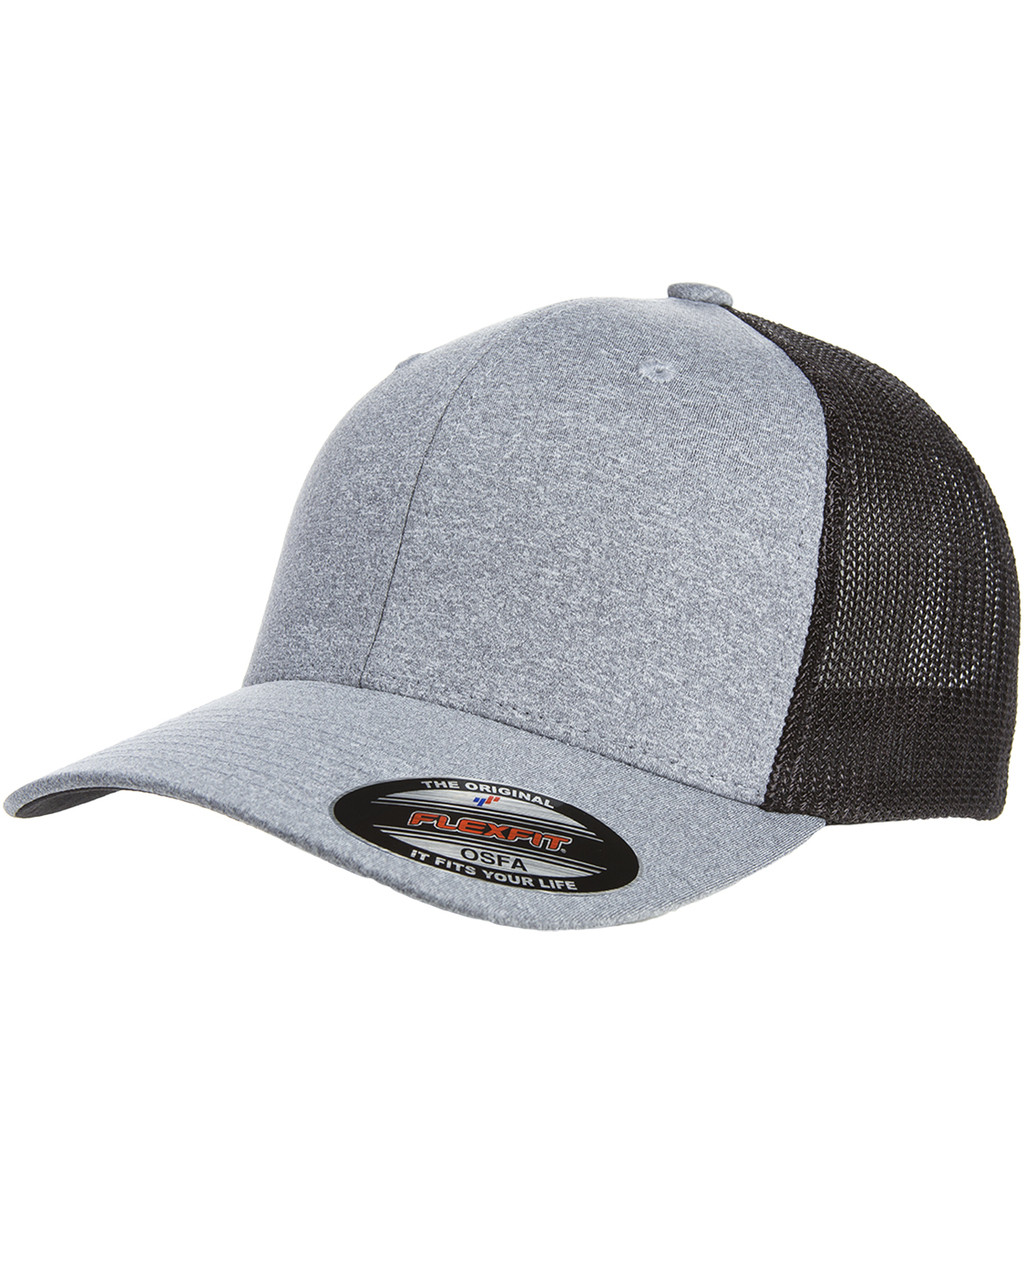 8a800446 Flexfit Y6311 Adult Poly Mélange Stretch Mesh Cap - ClothingAuthority.com